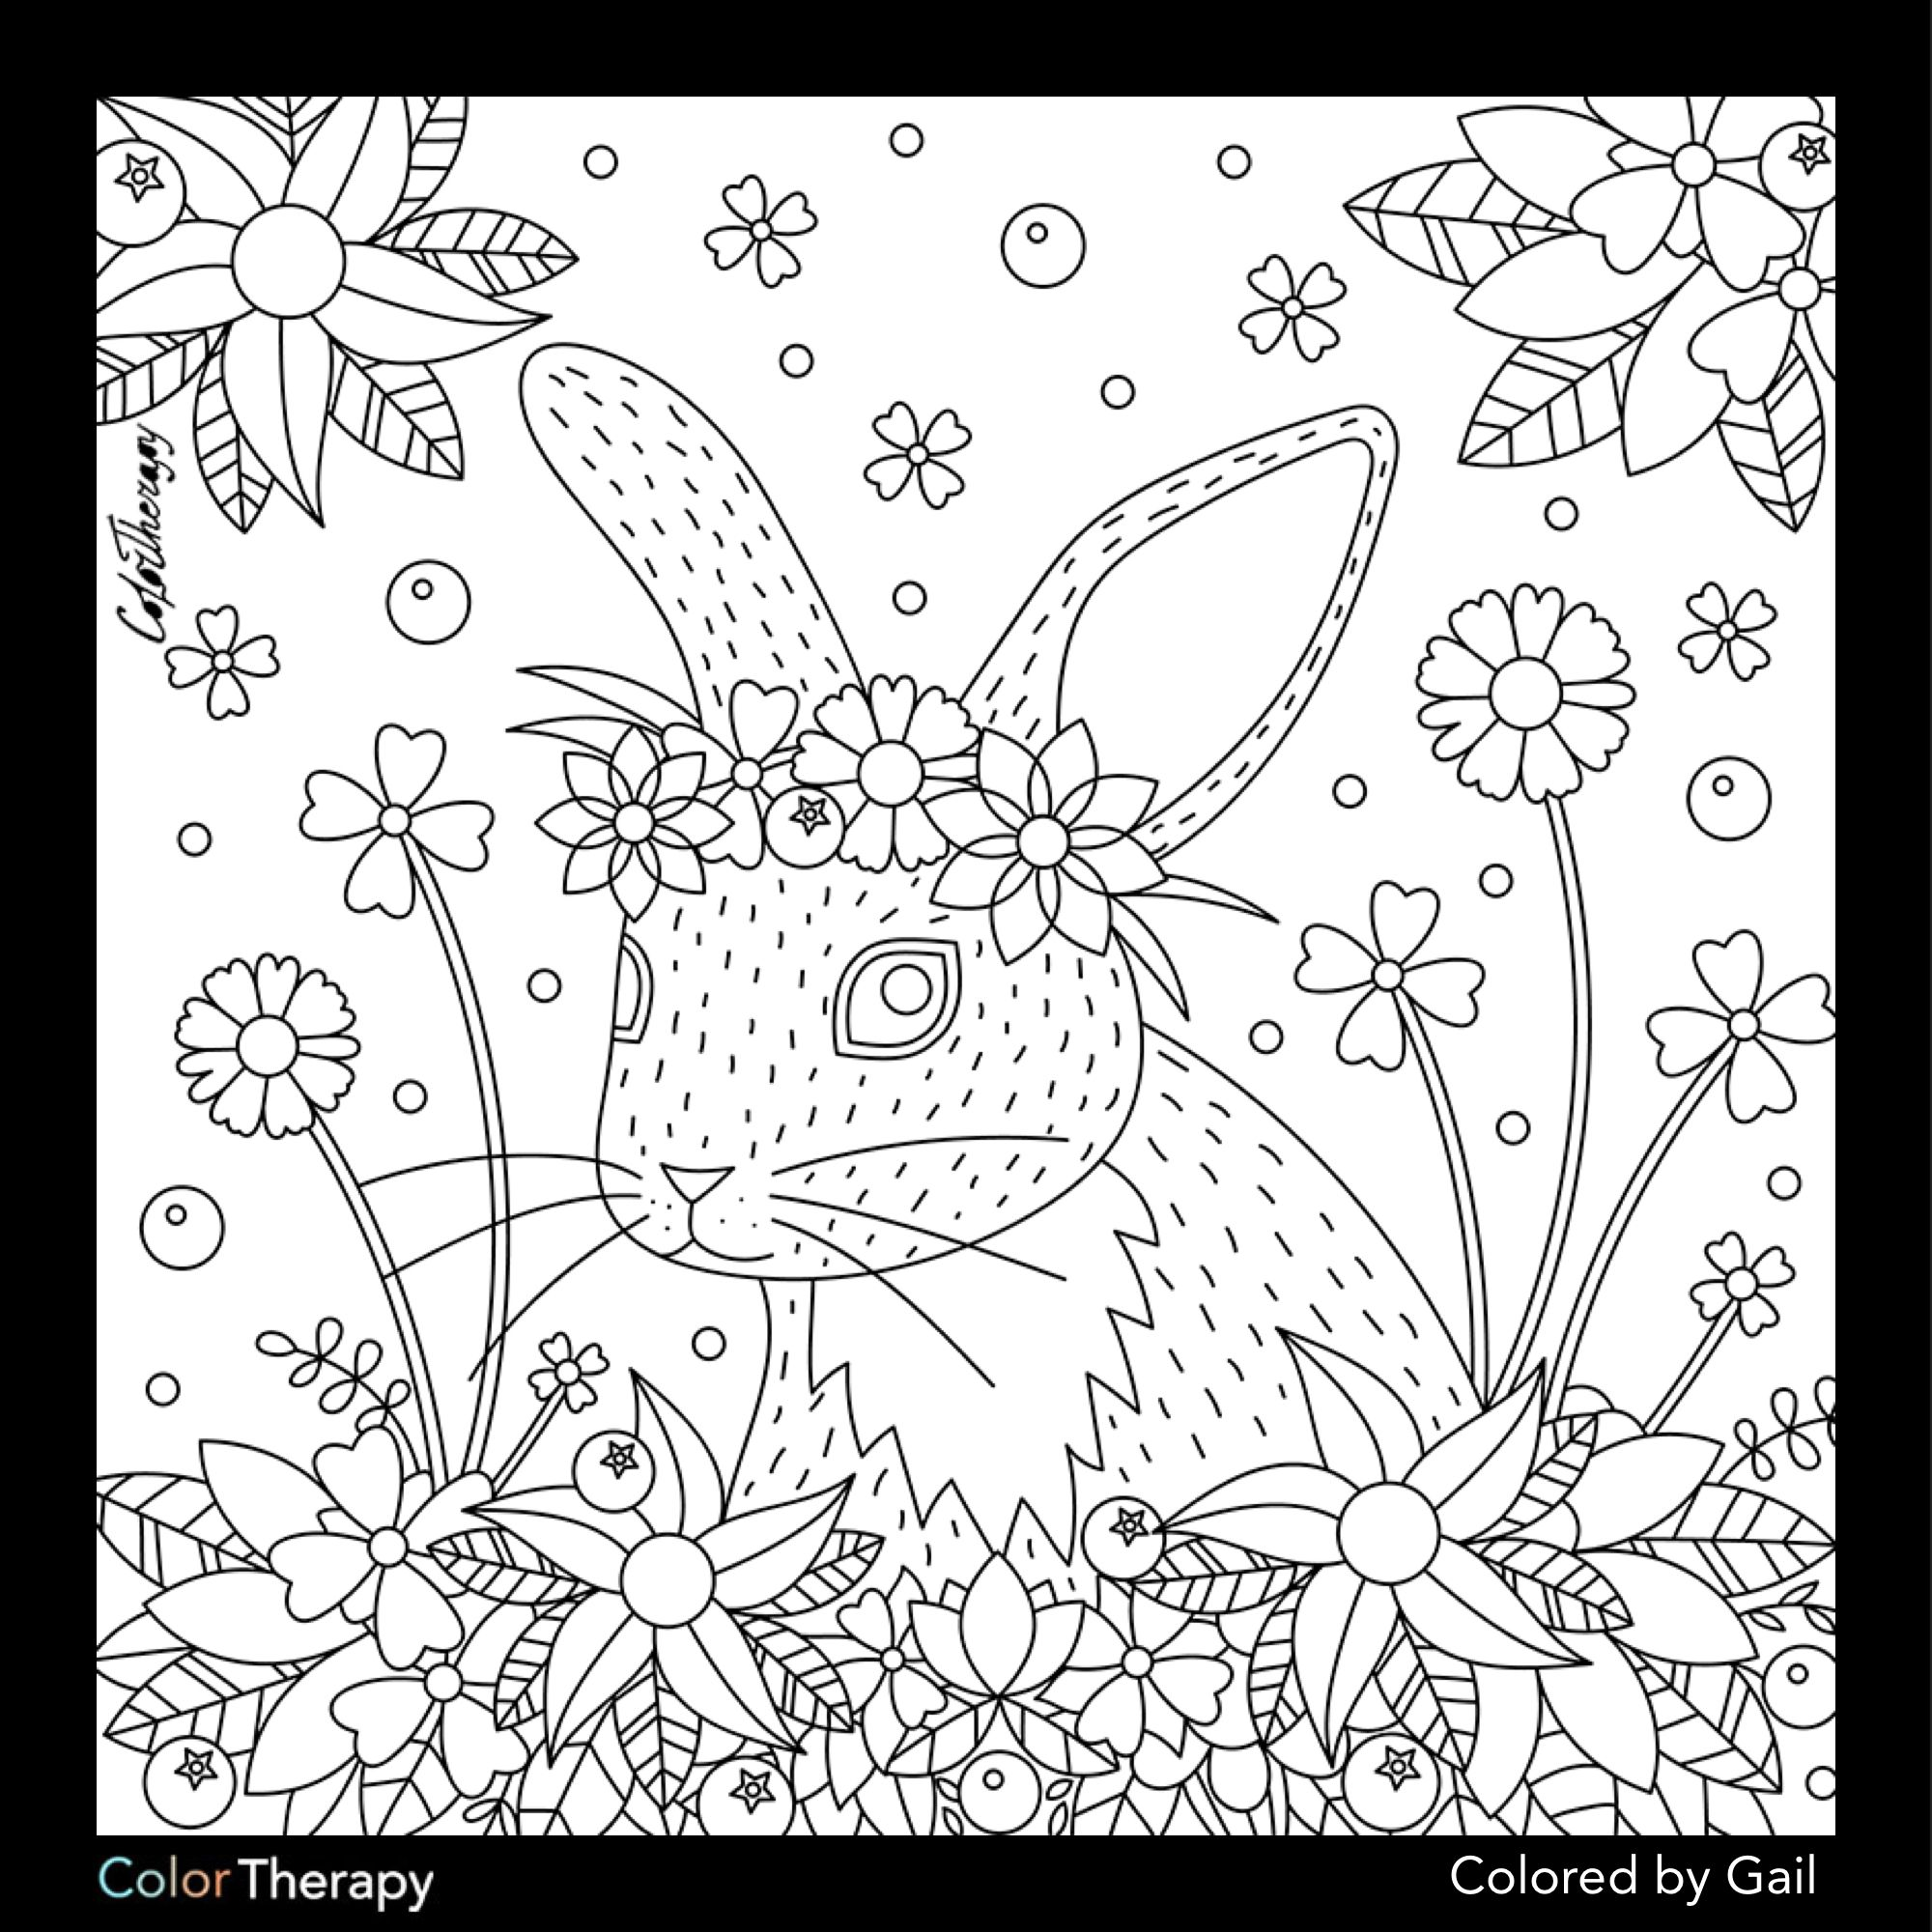 I Colored This Myself Using Color Therapy App It Was So Fun And Relaxing And It S Free Abstract Coloring Pages Cool Coloring Pages Coloring Books